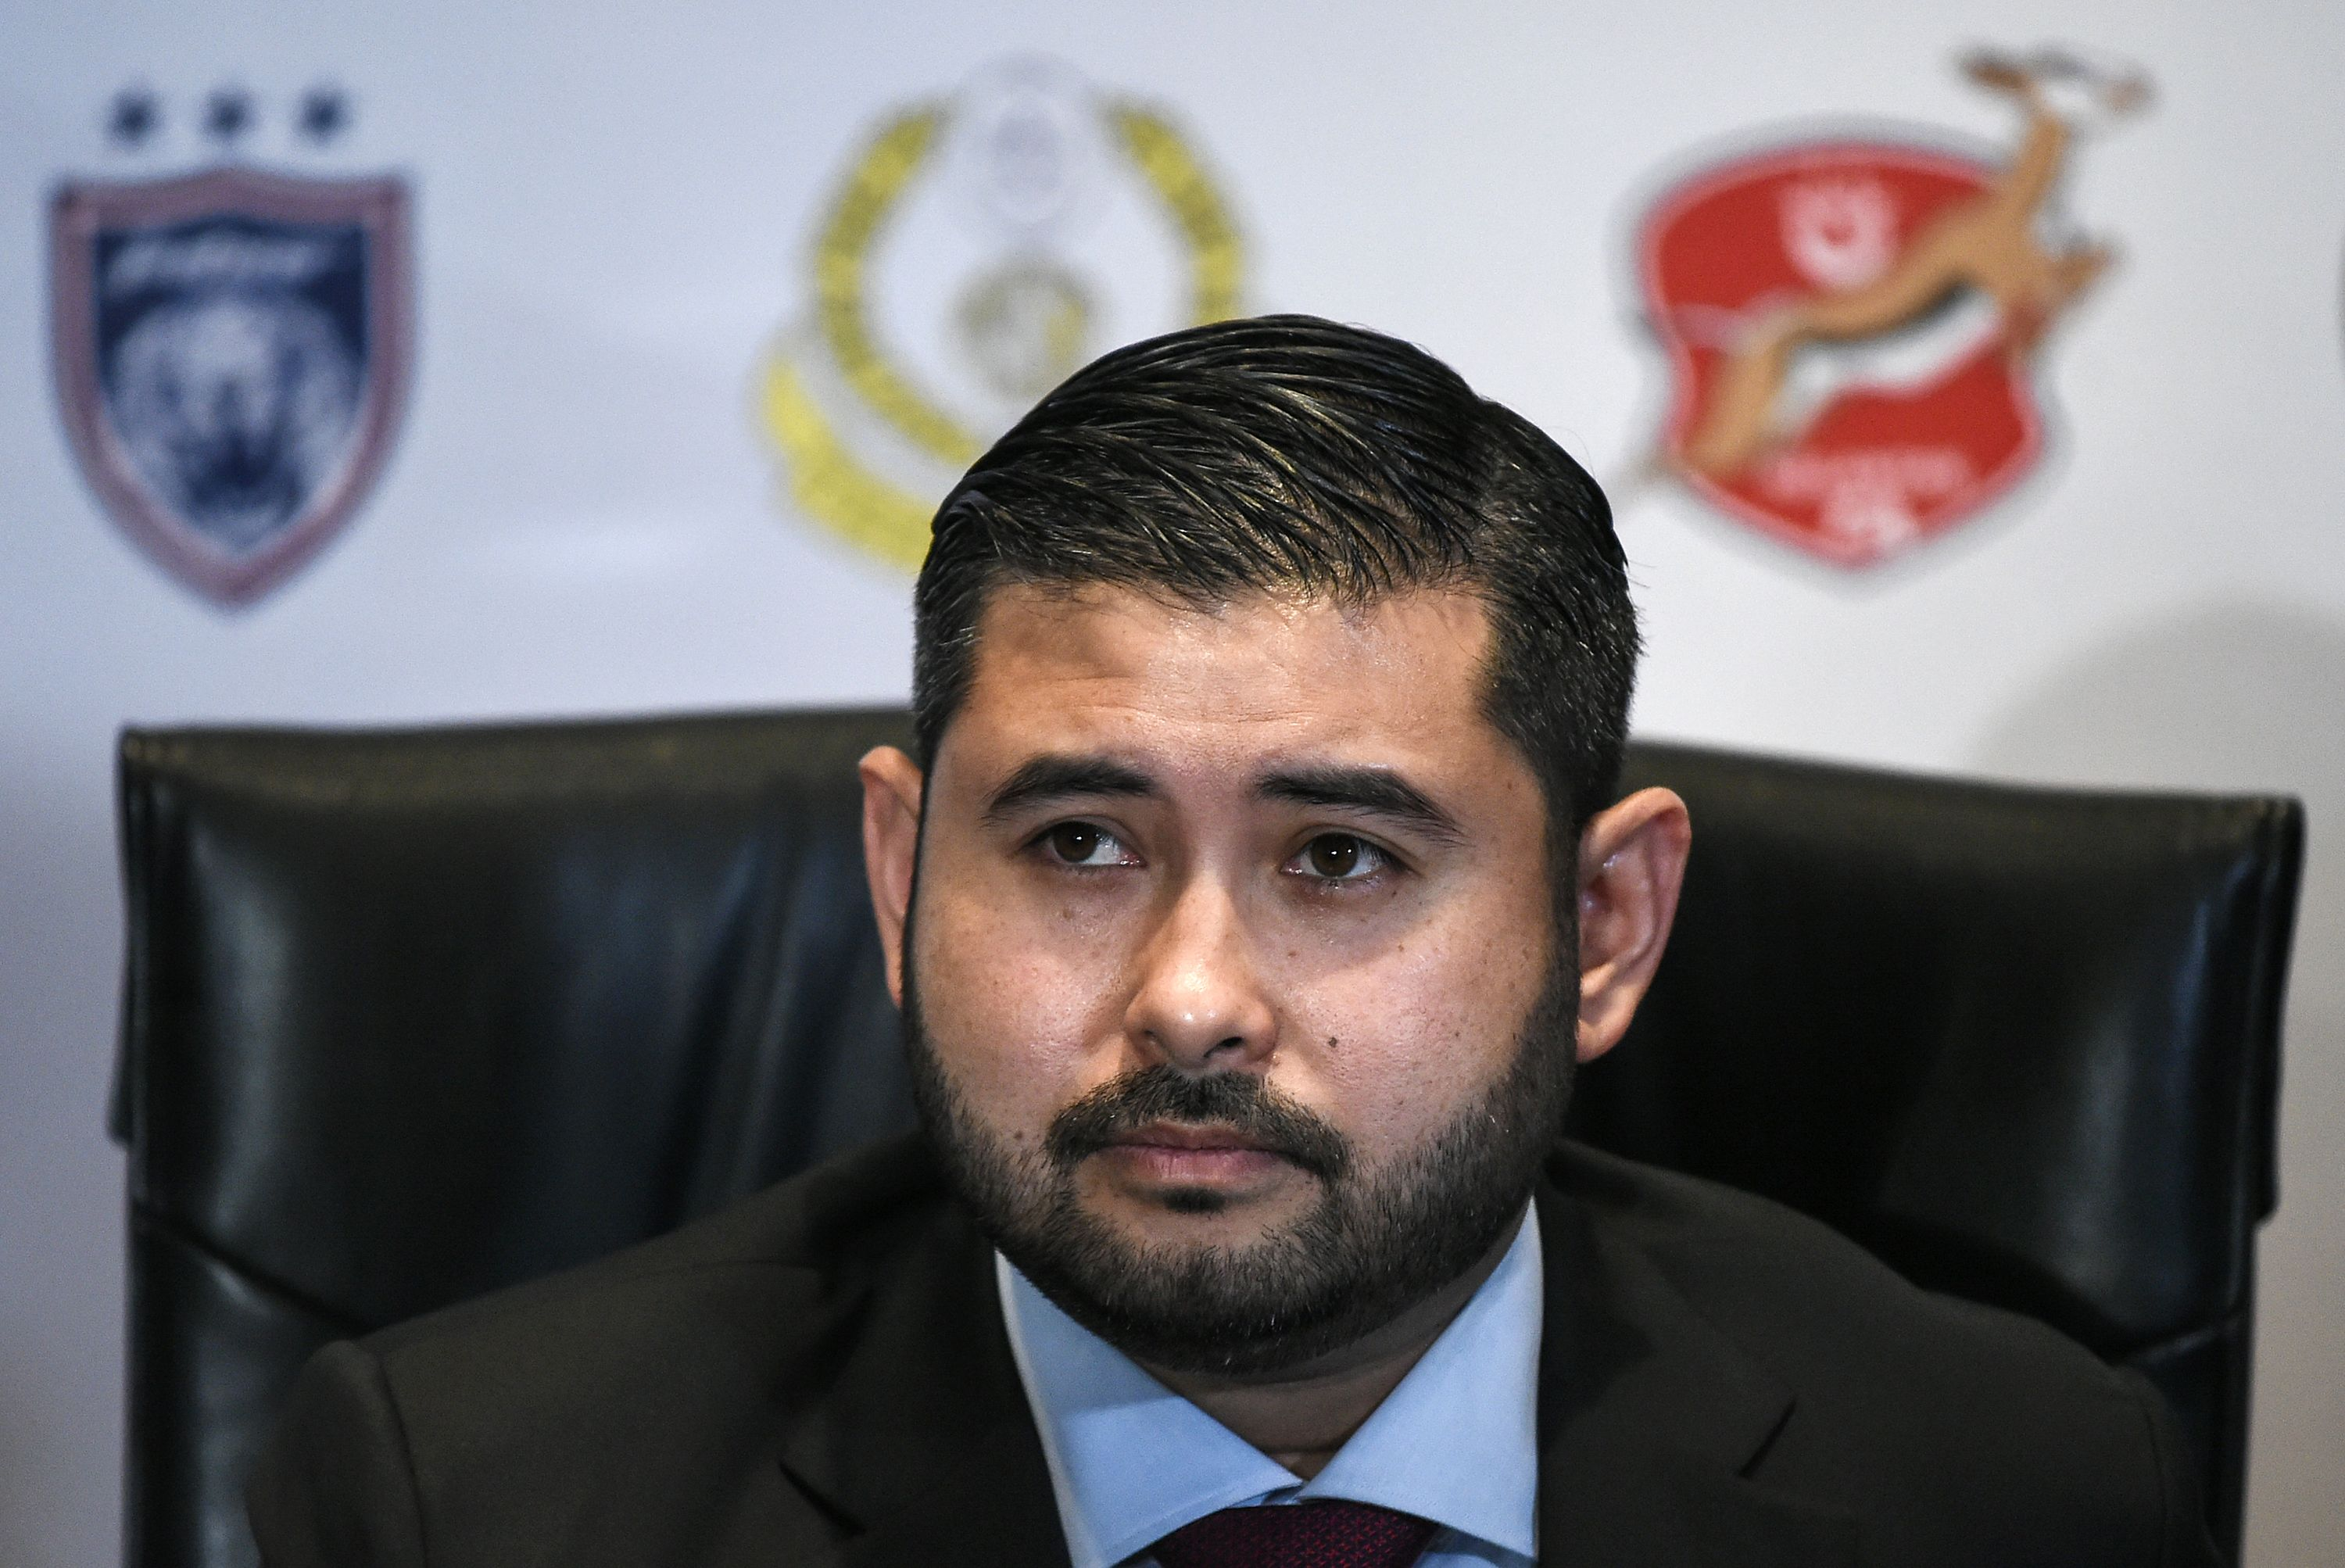 Johor's Tunku Ismail granted direct flight access to Pyongyang from JB